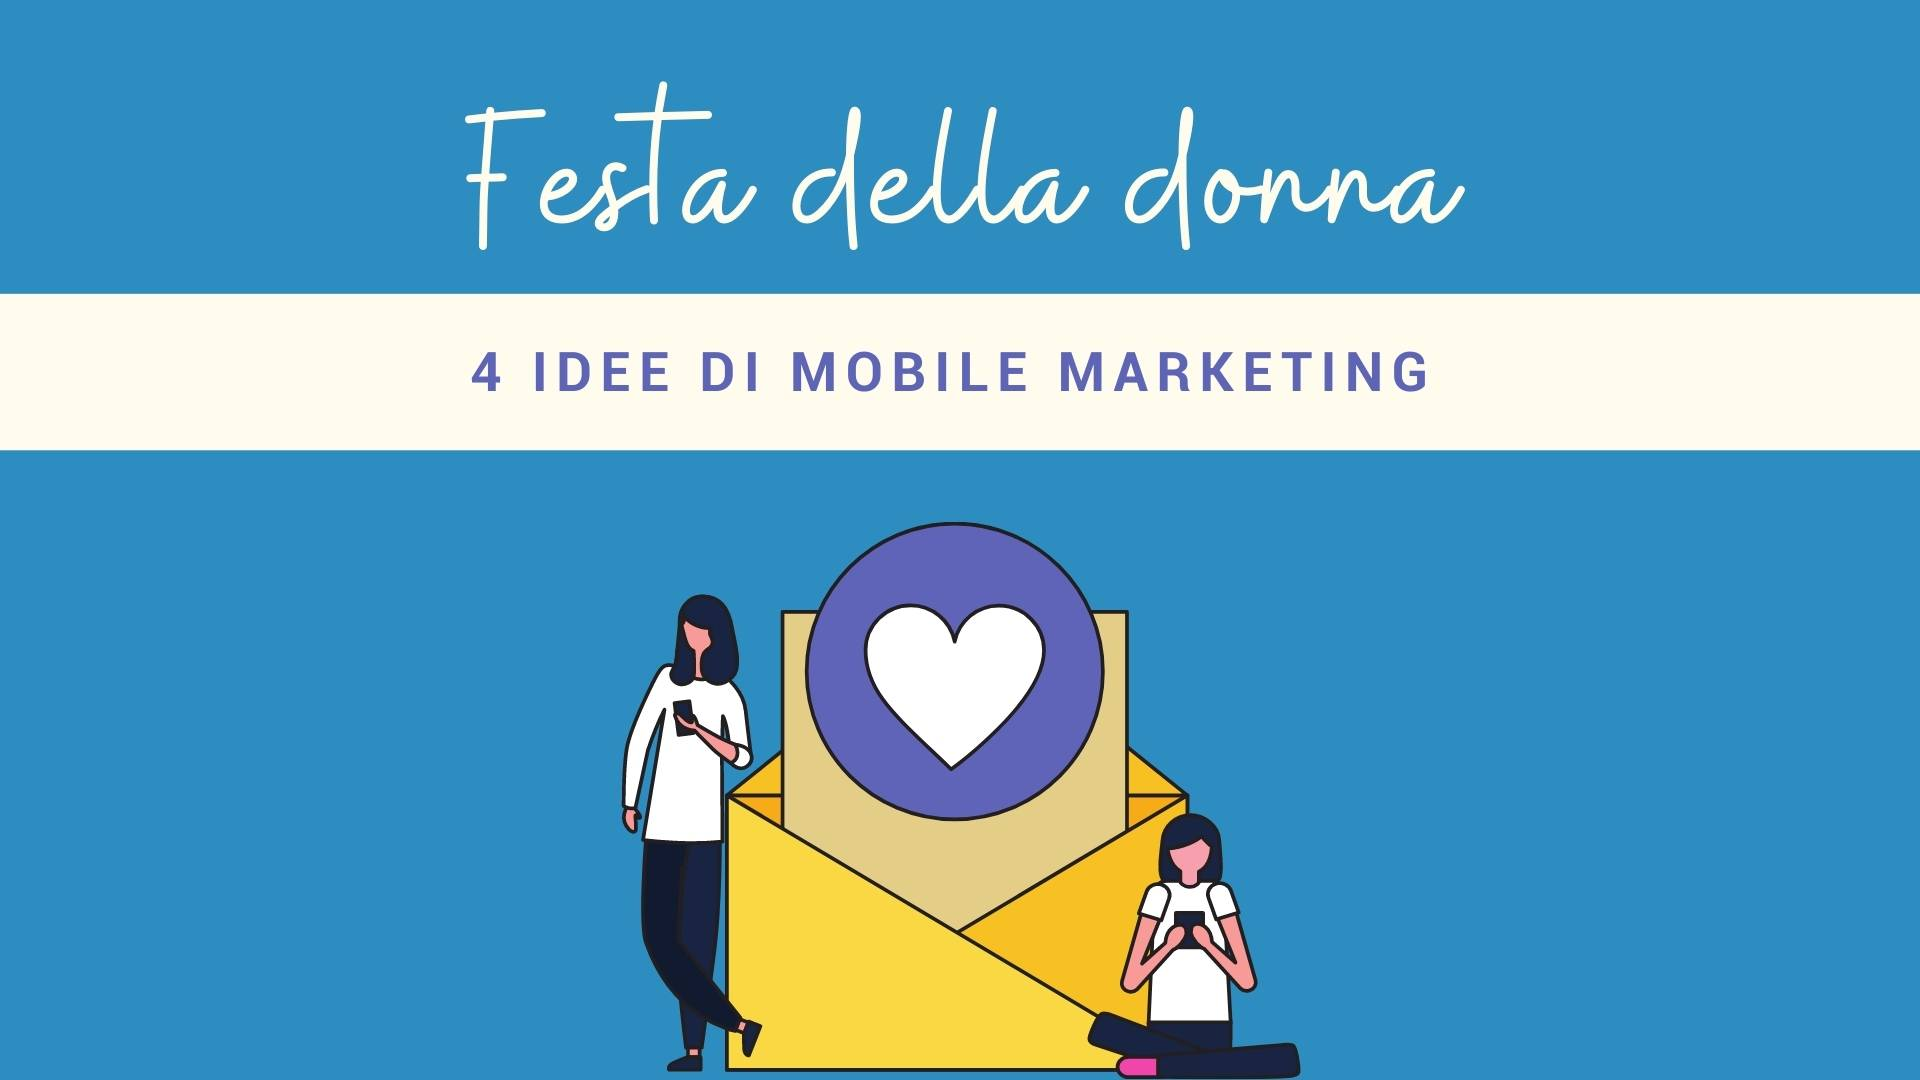 Mobile marketing per la festa della donna : 4 idee efficaci